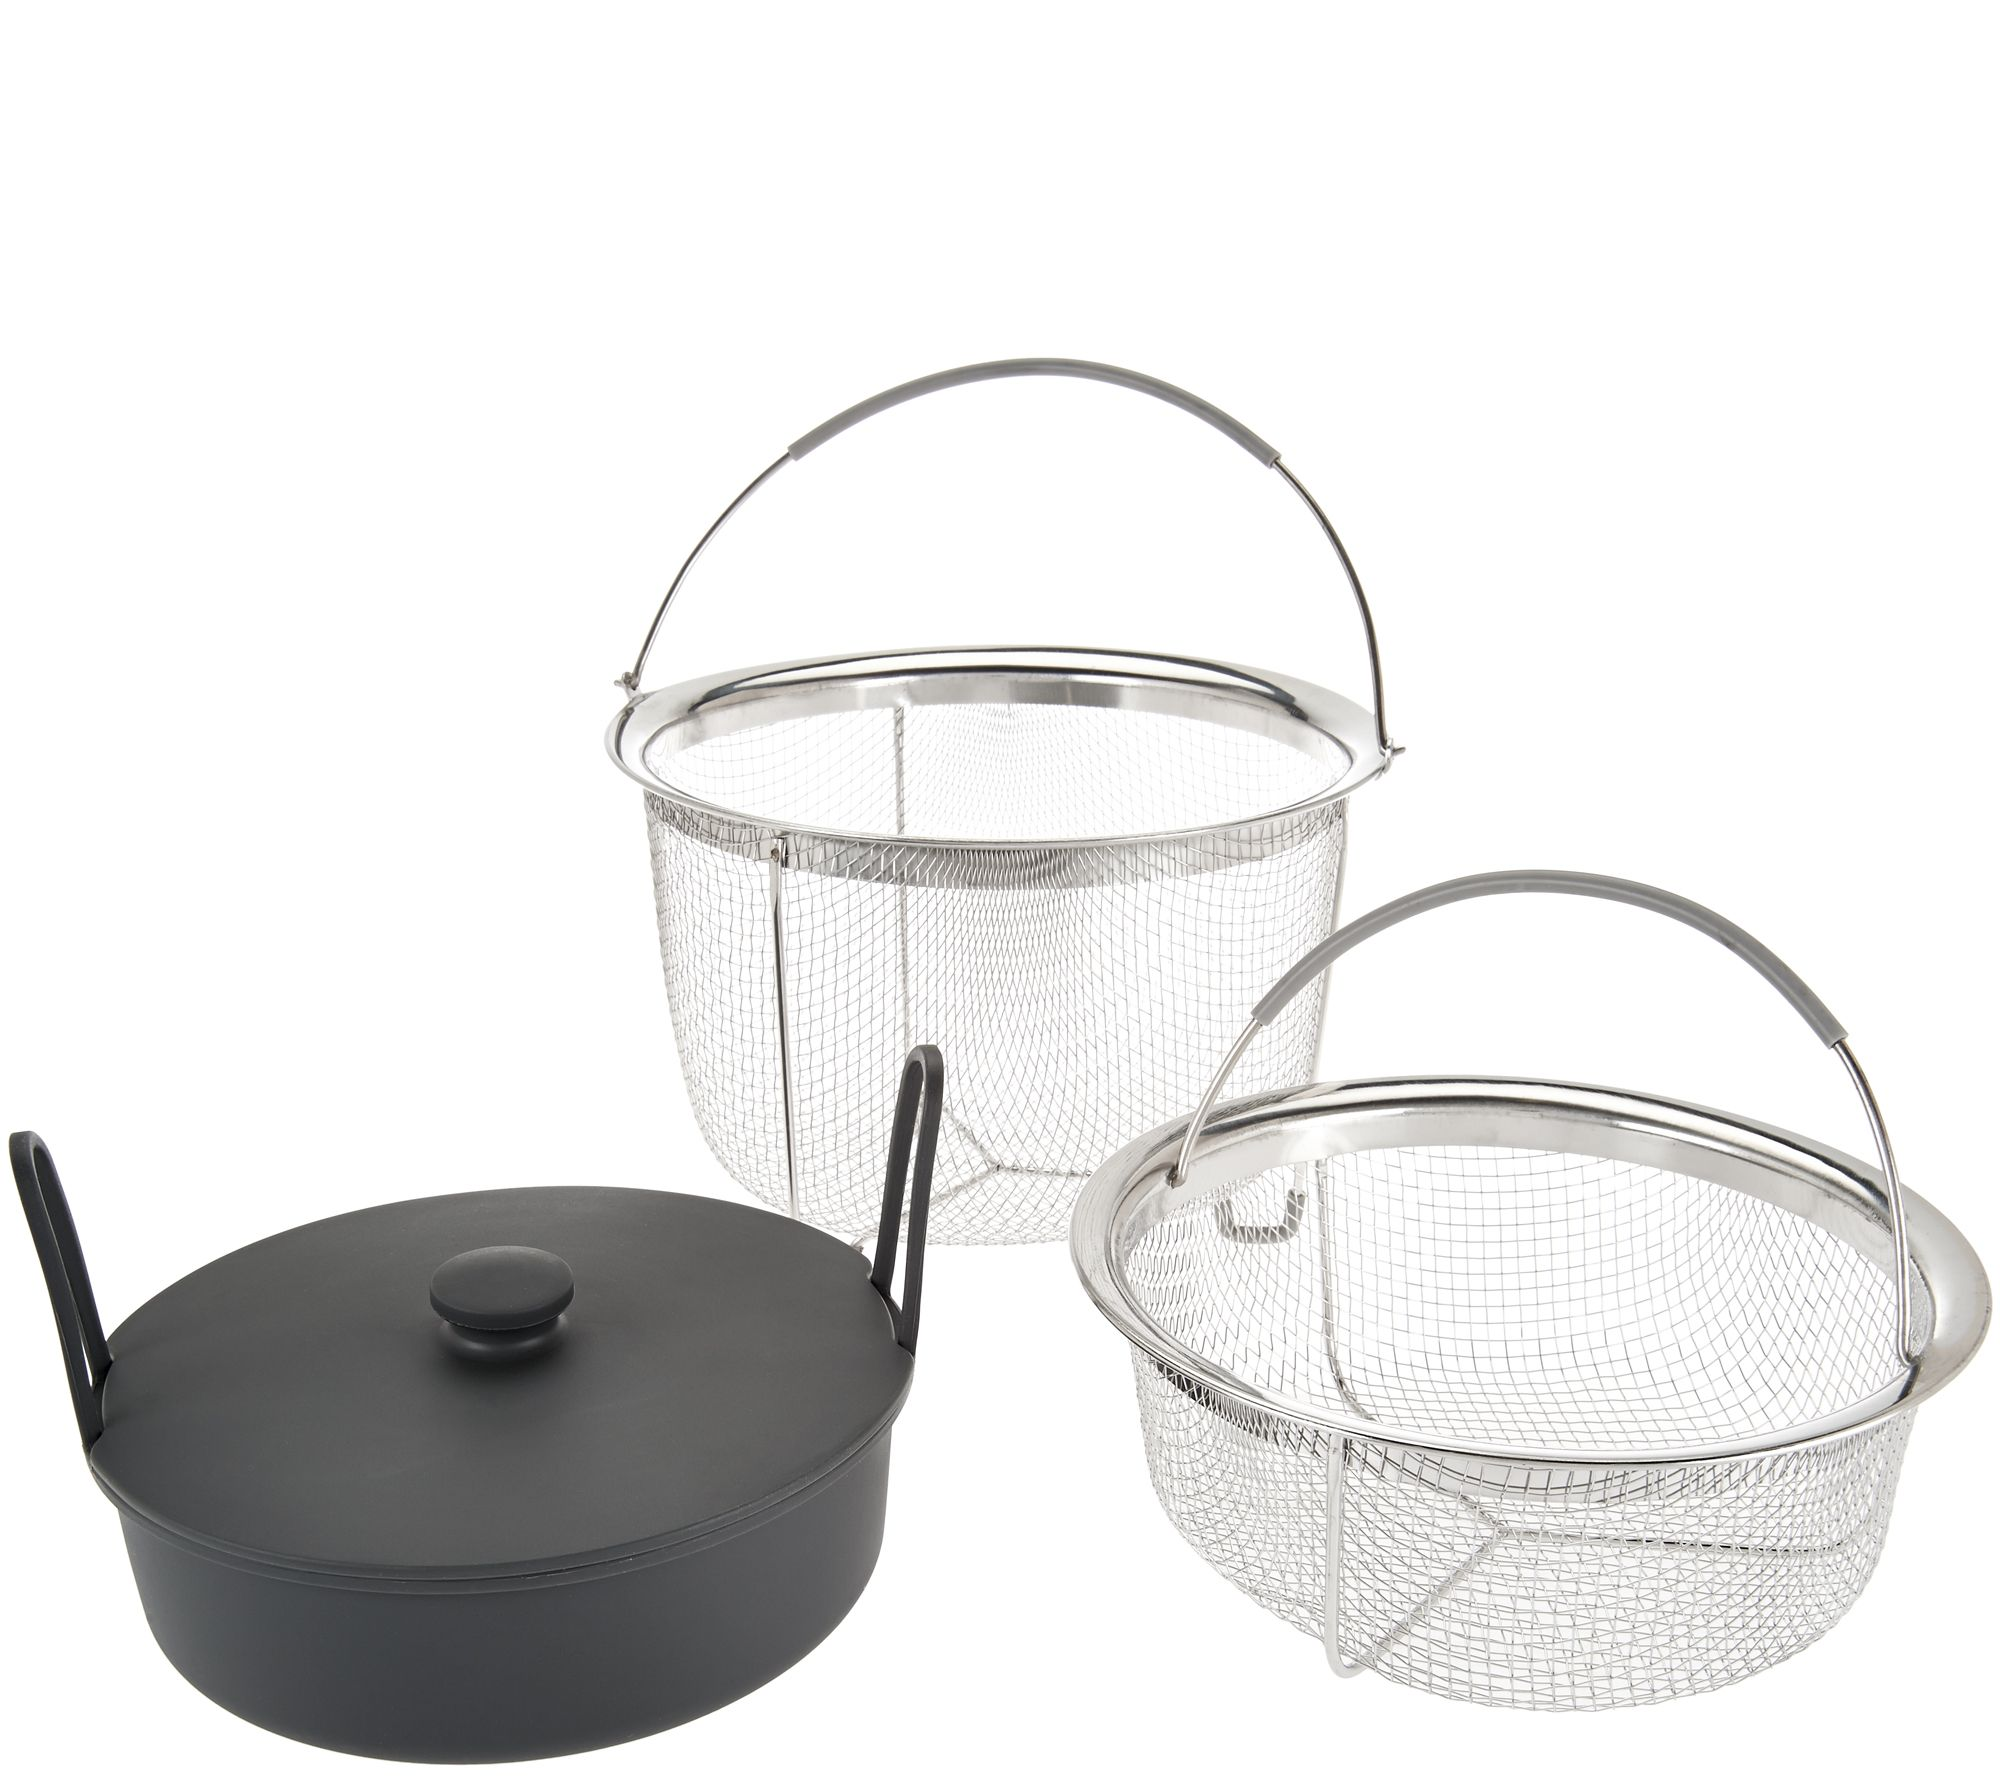 Cooksessentials Stainless Steel Insert For 6qt Pressure